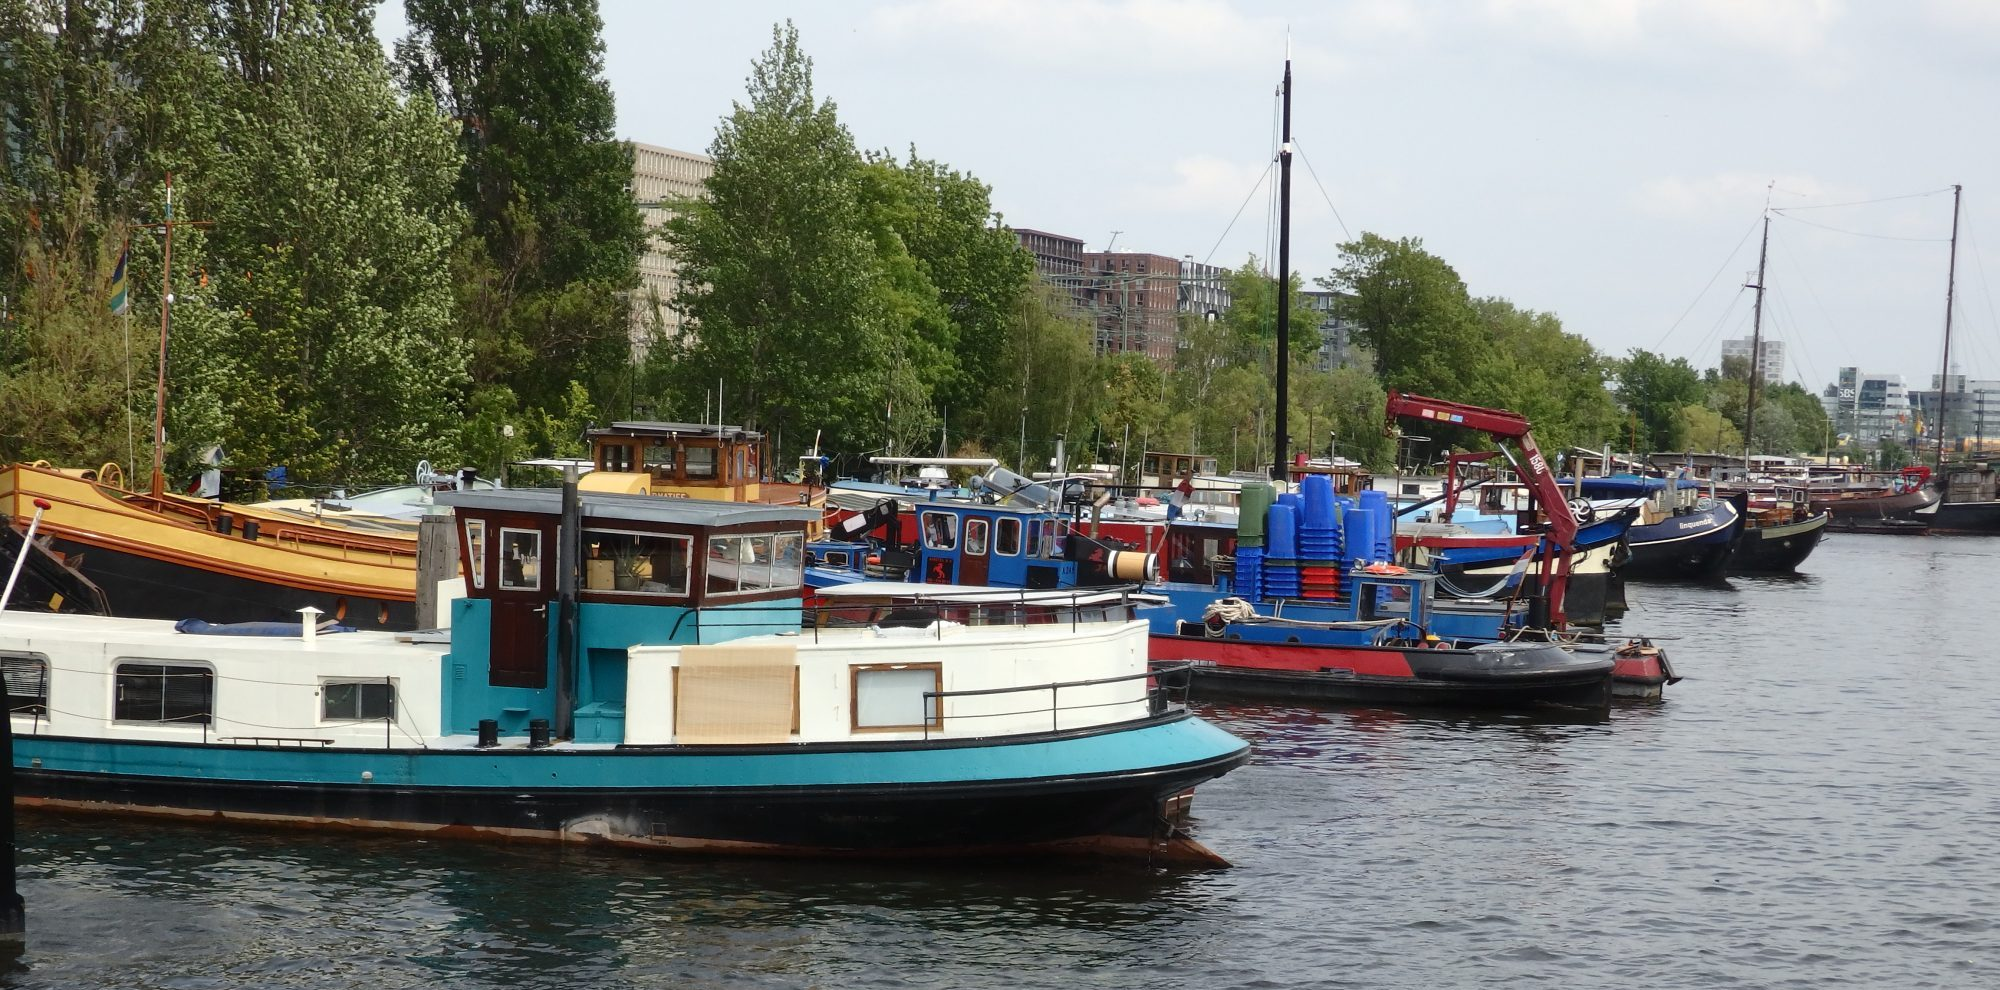 The beginning of the row of houseboats along Dijksgracht in Amsterdam